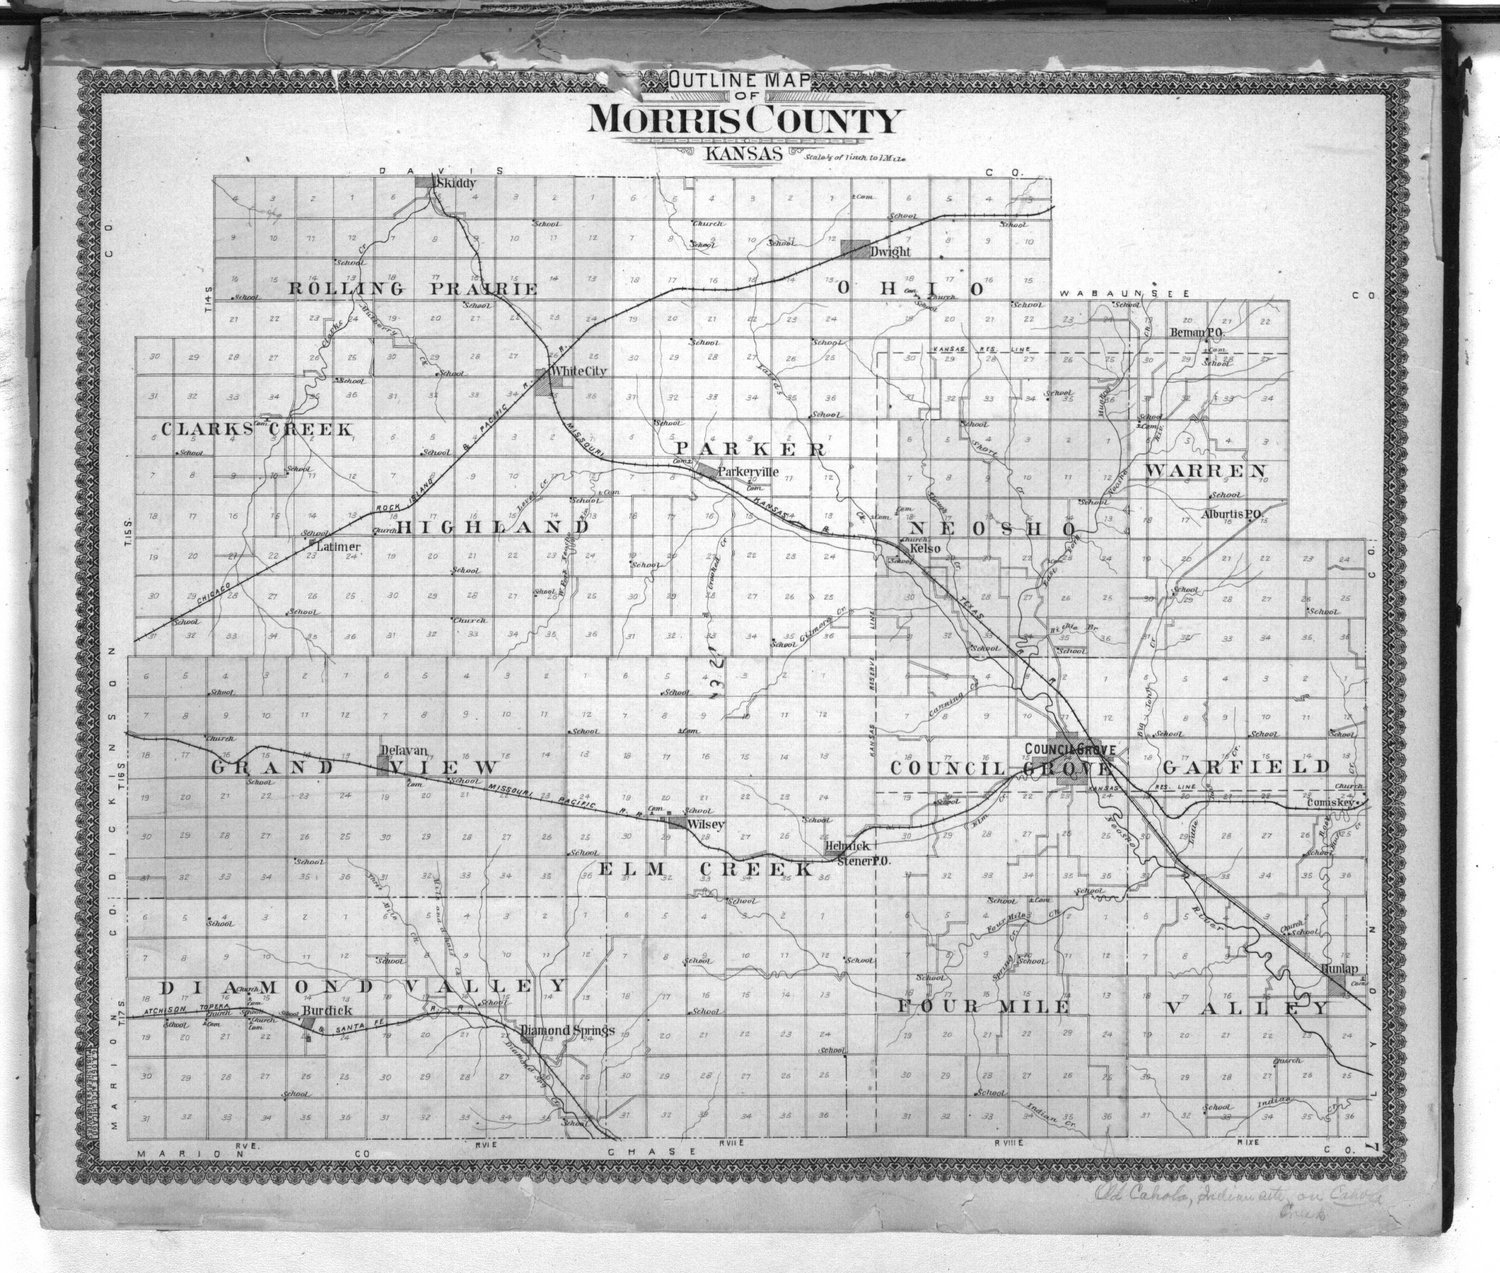 Standard atlas of Morris County, Kansas - 7